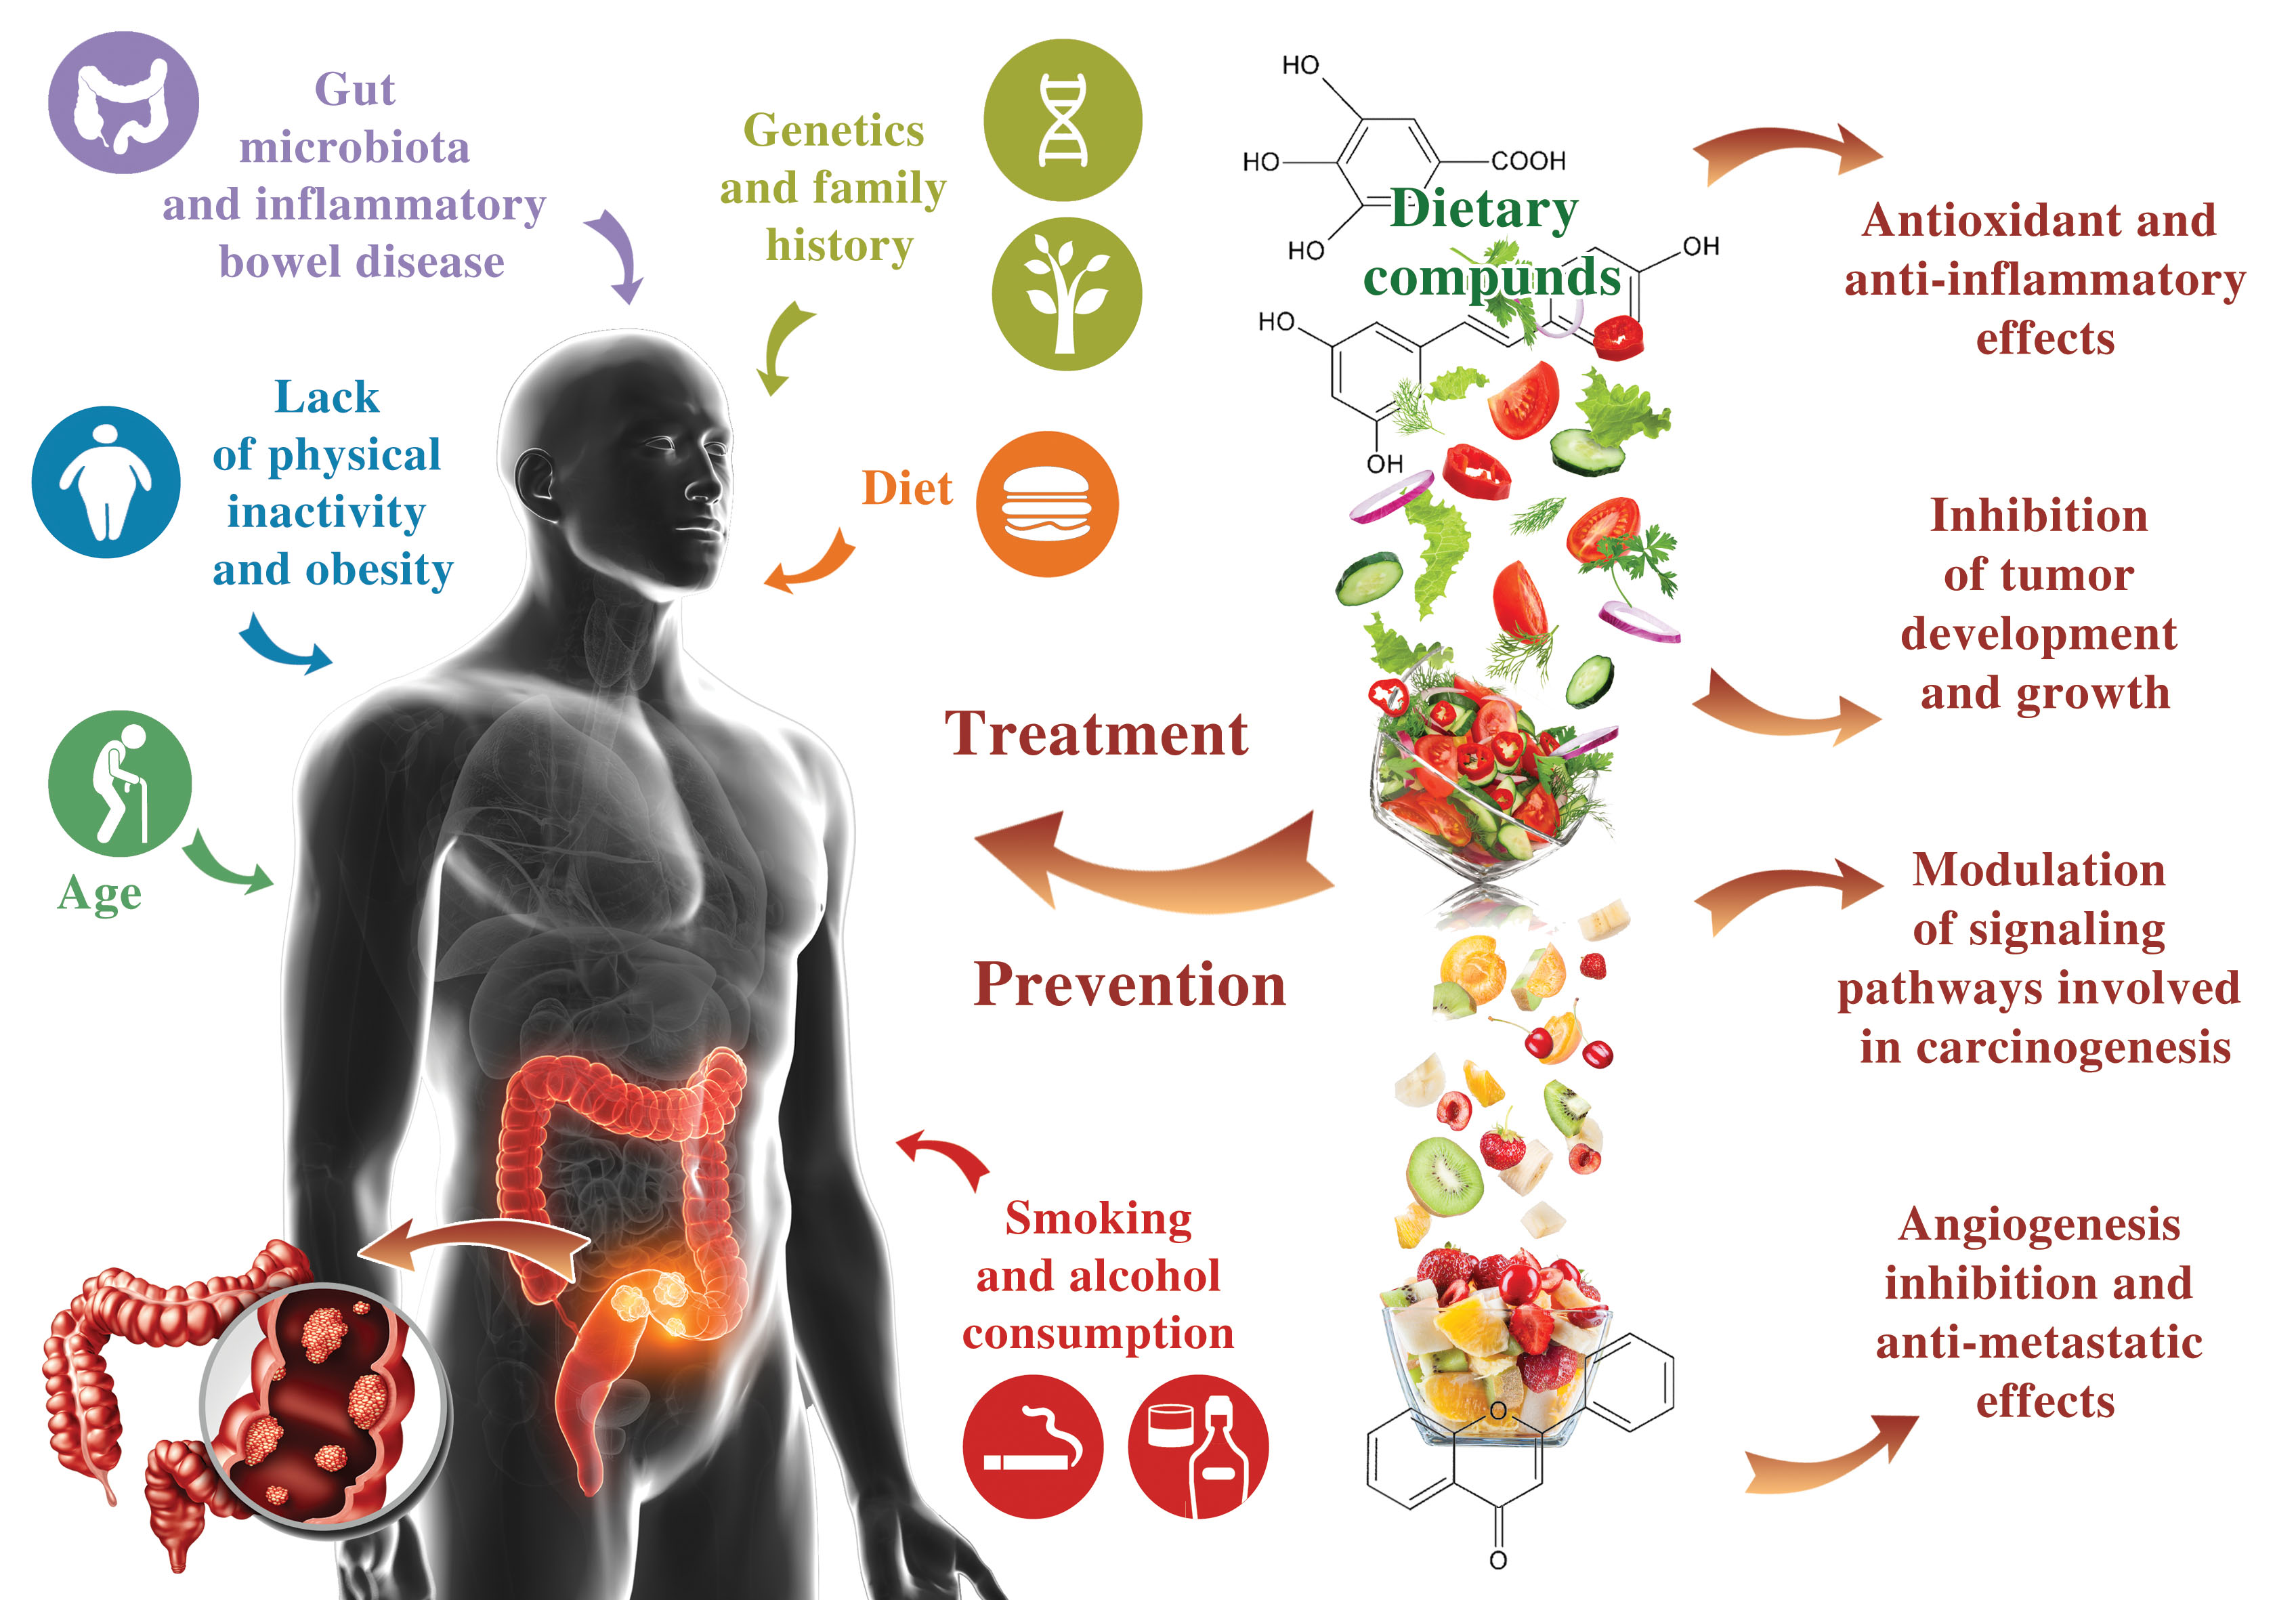 Ijms Free Full Text Chemoprevention Of Colorectal Cancer By Dietary Compounds Html